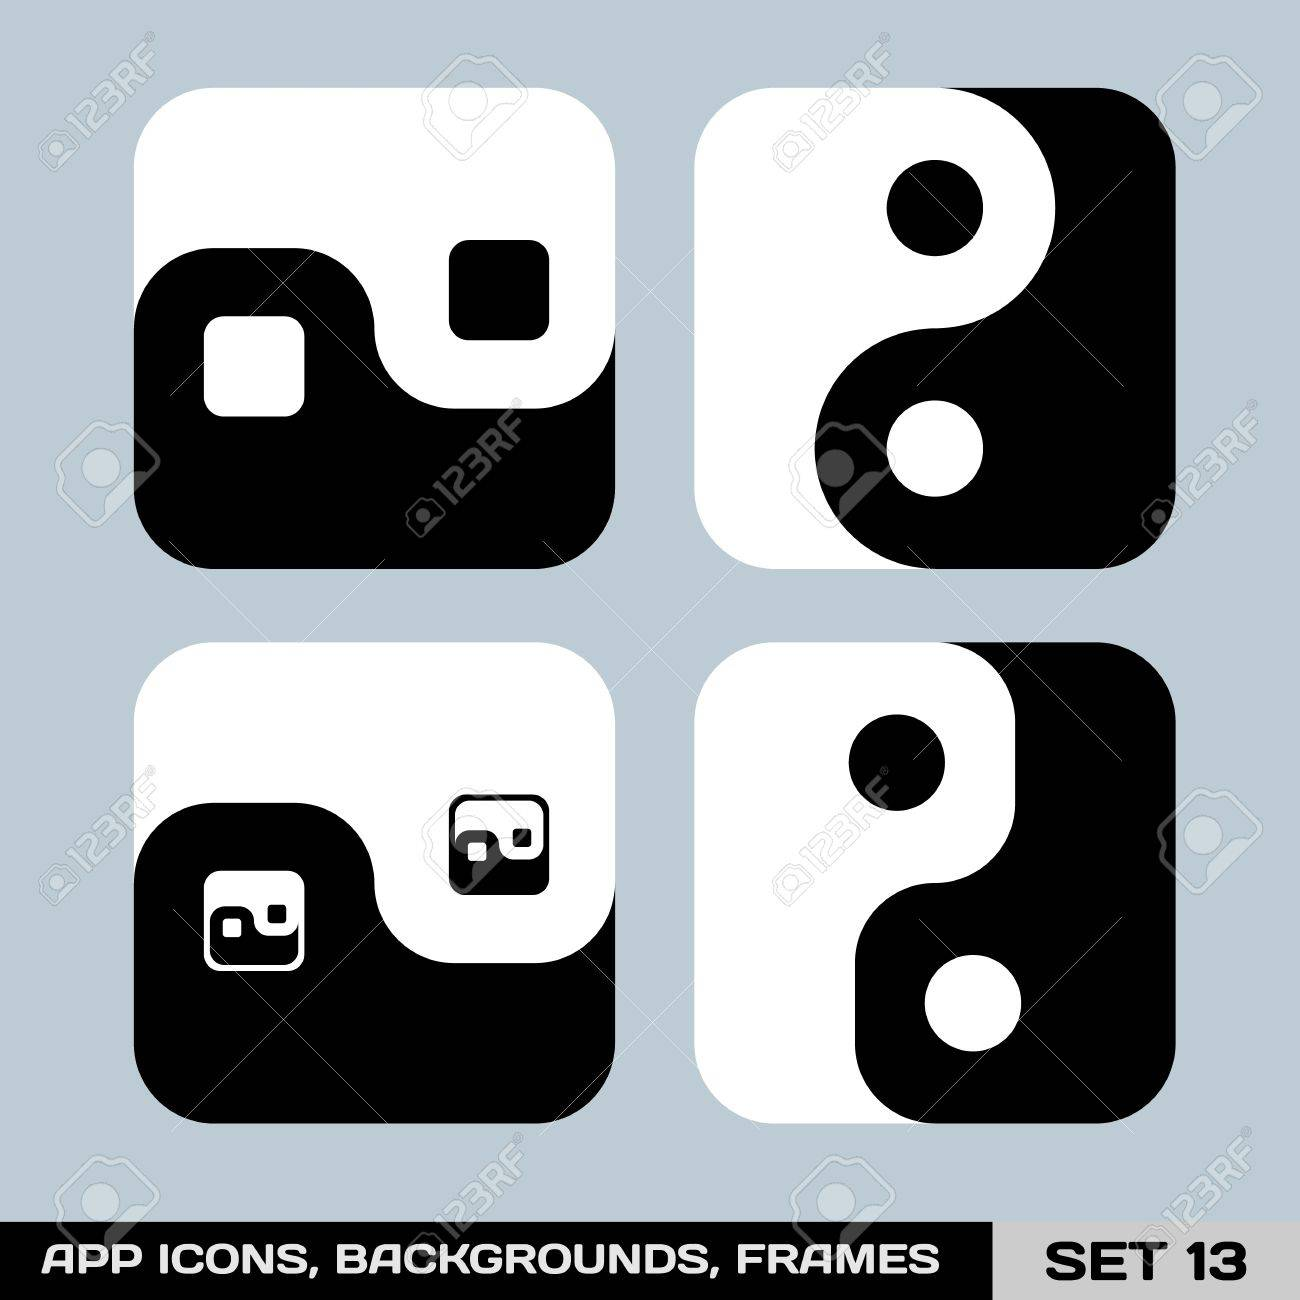 Set Of App Icon Backgrounds, Frames, Templates Set Royalty Free ...